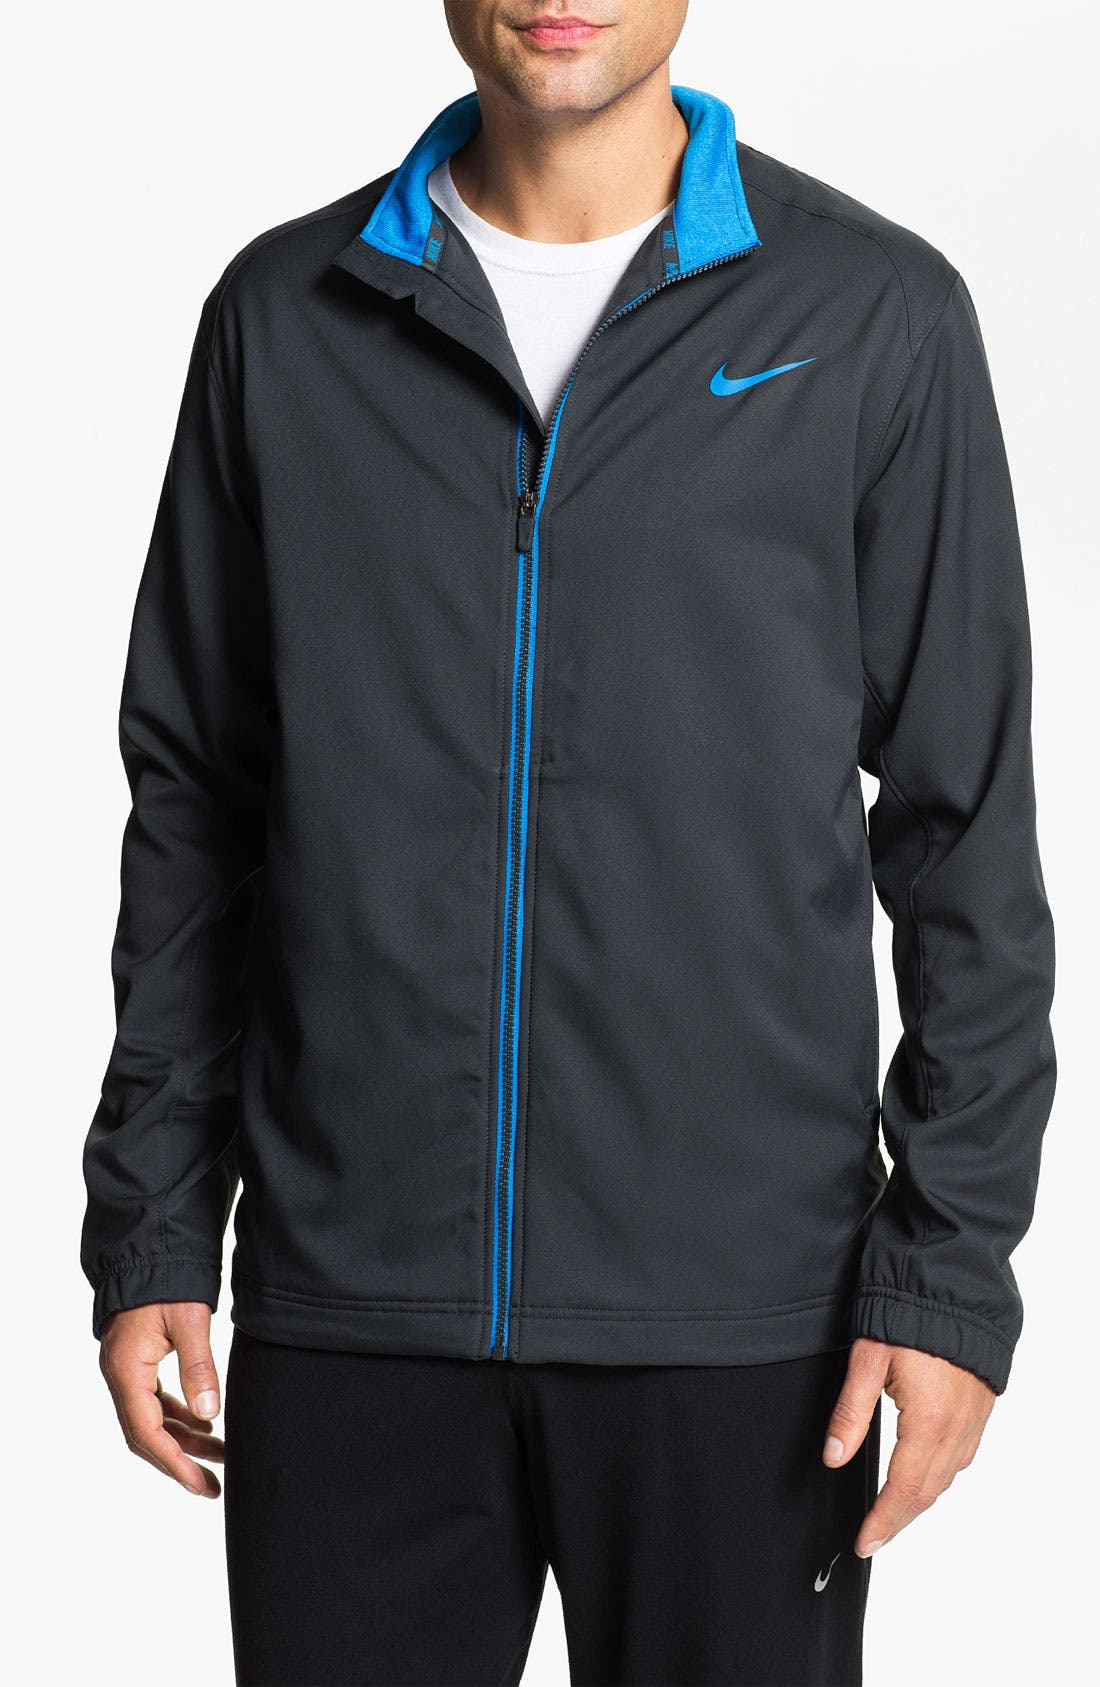 Alternate Image 1 Selected - Nike 'Speed' Jacket